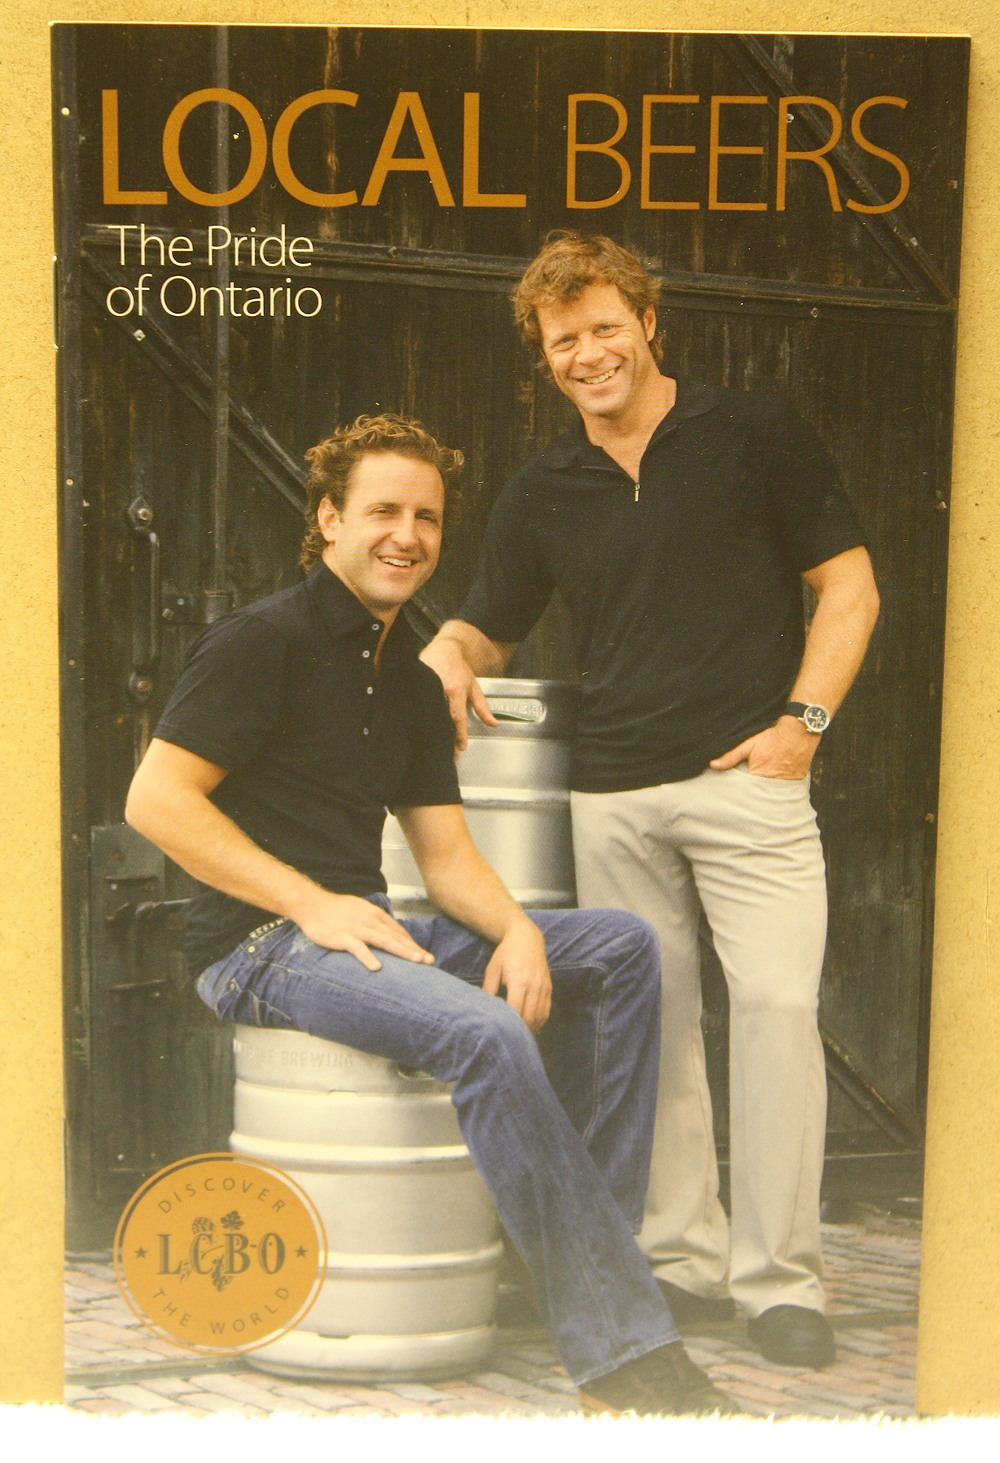 Local Beers_The Pride of Ontario (2009)